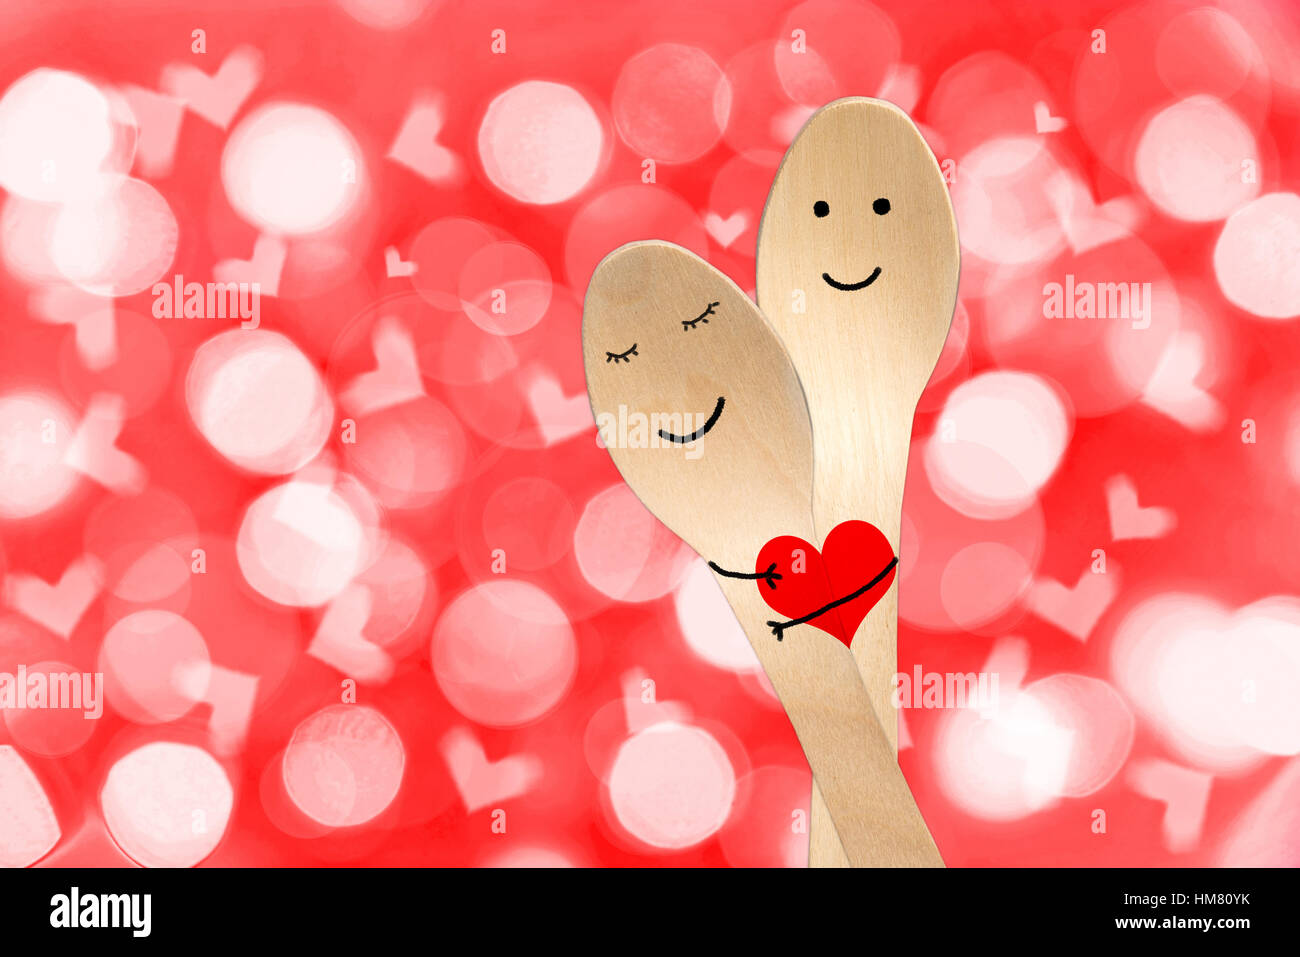 Happy couple hug concept, smiley painted on spoons, valentines day background - Stock Image